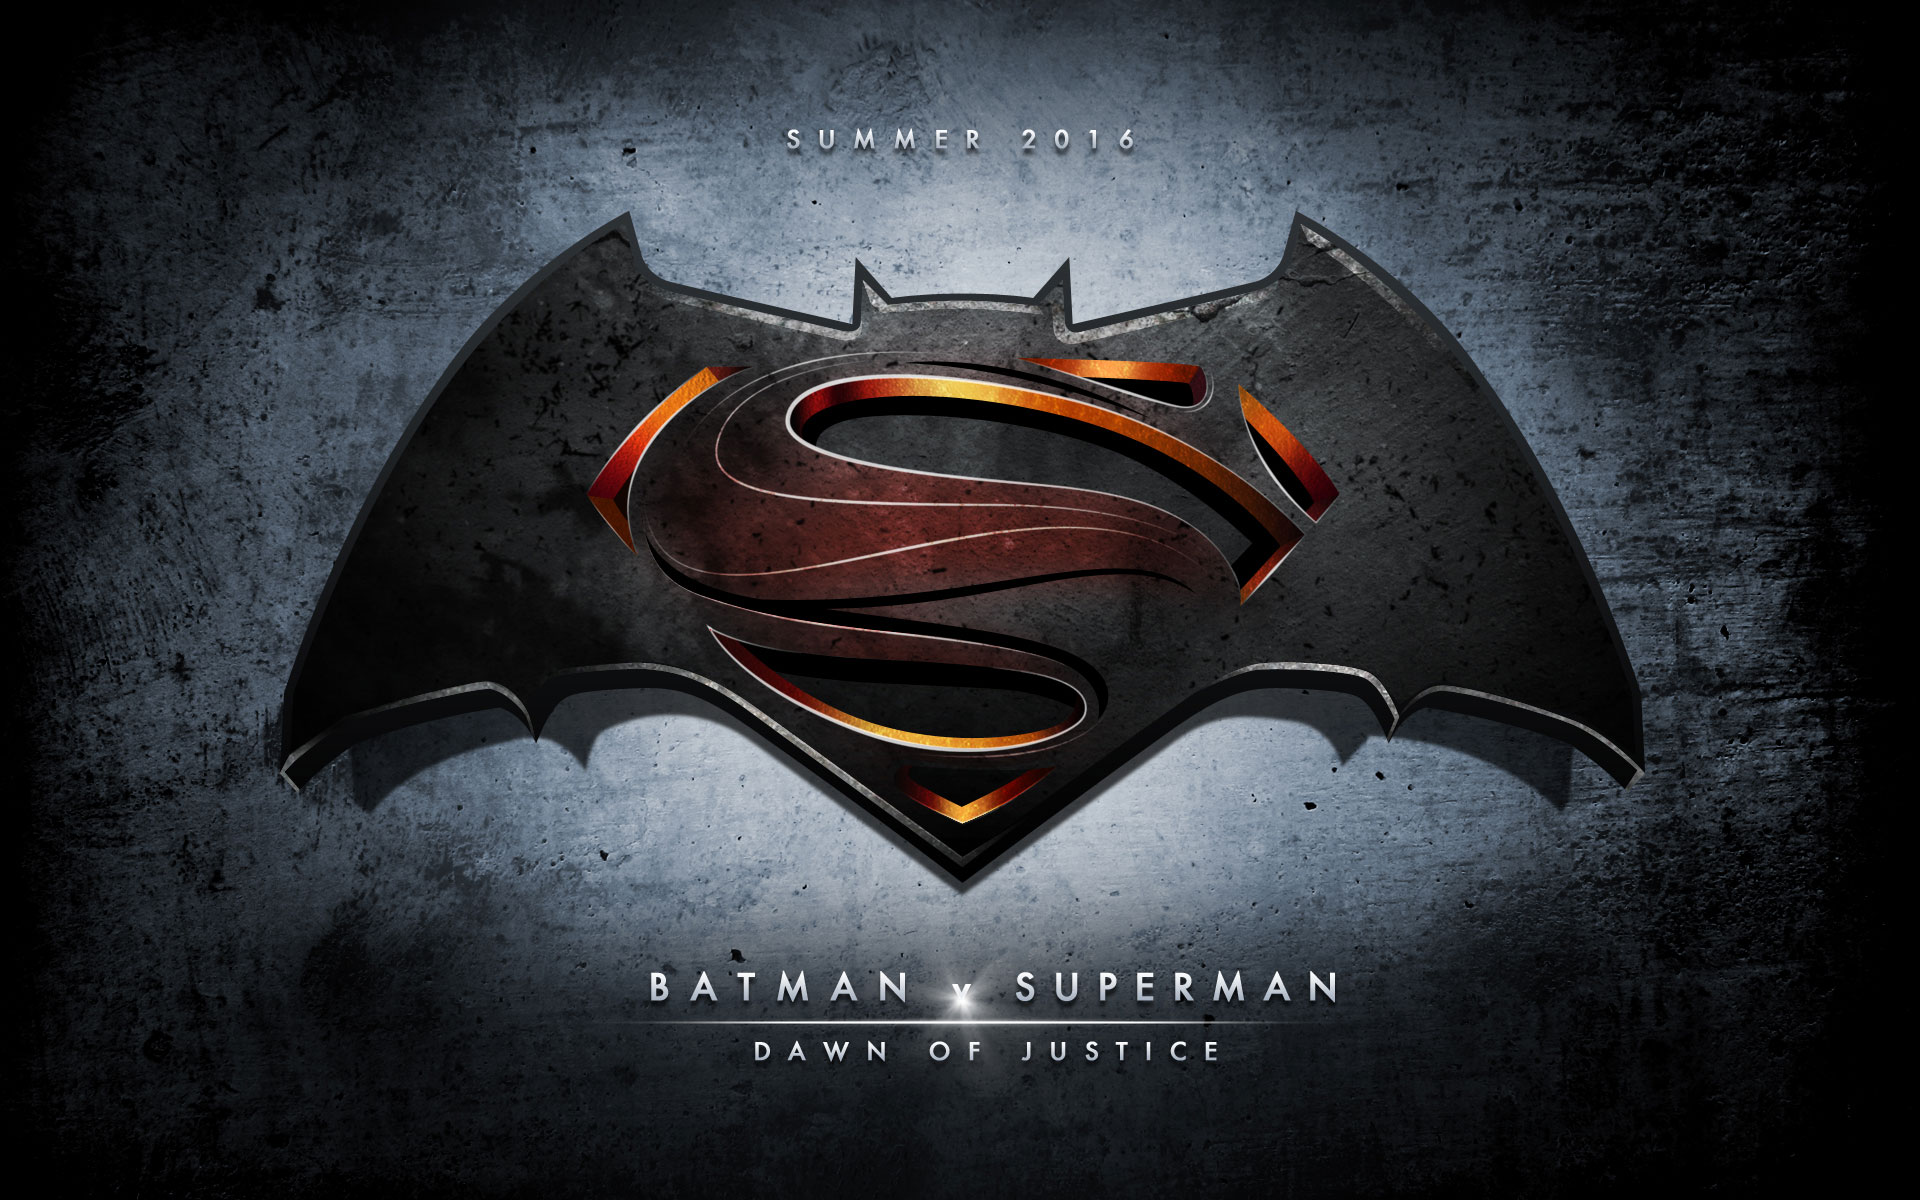 Batman Vs Superman Dawn Of Justice 2016 IPhone Desktop Src